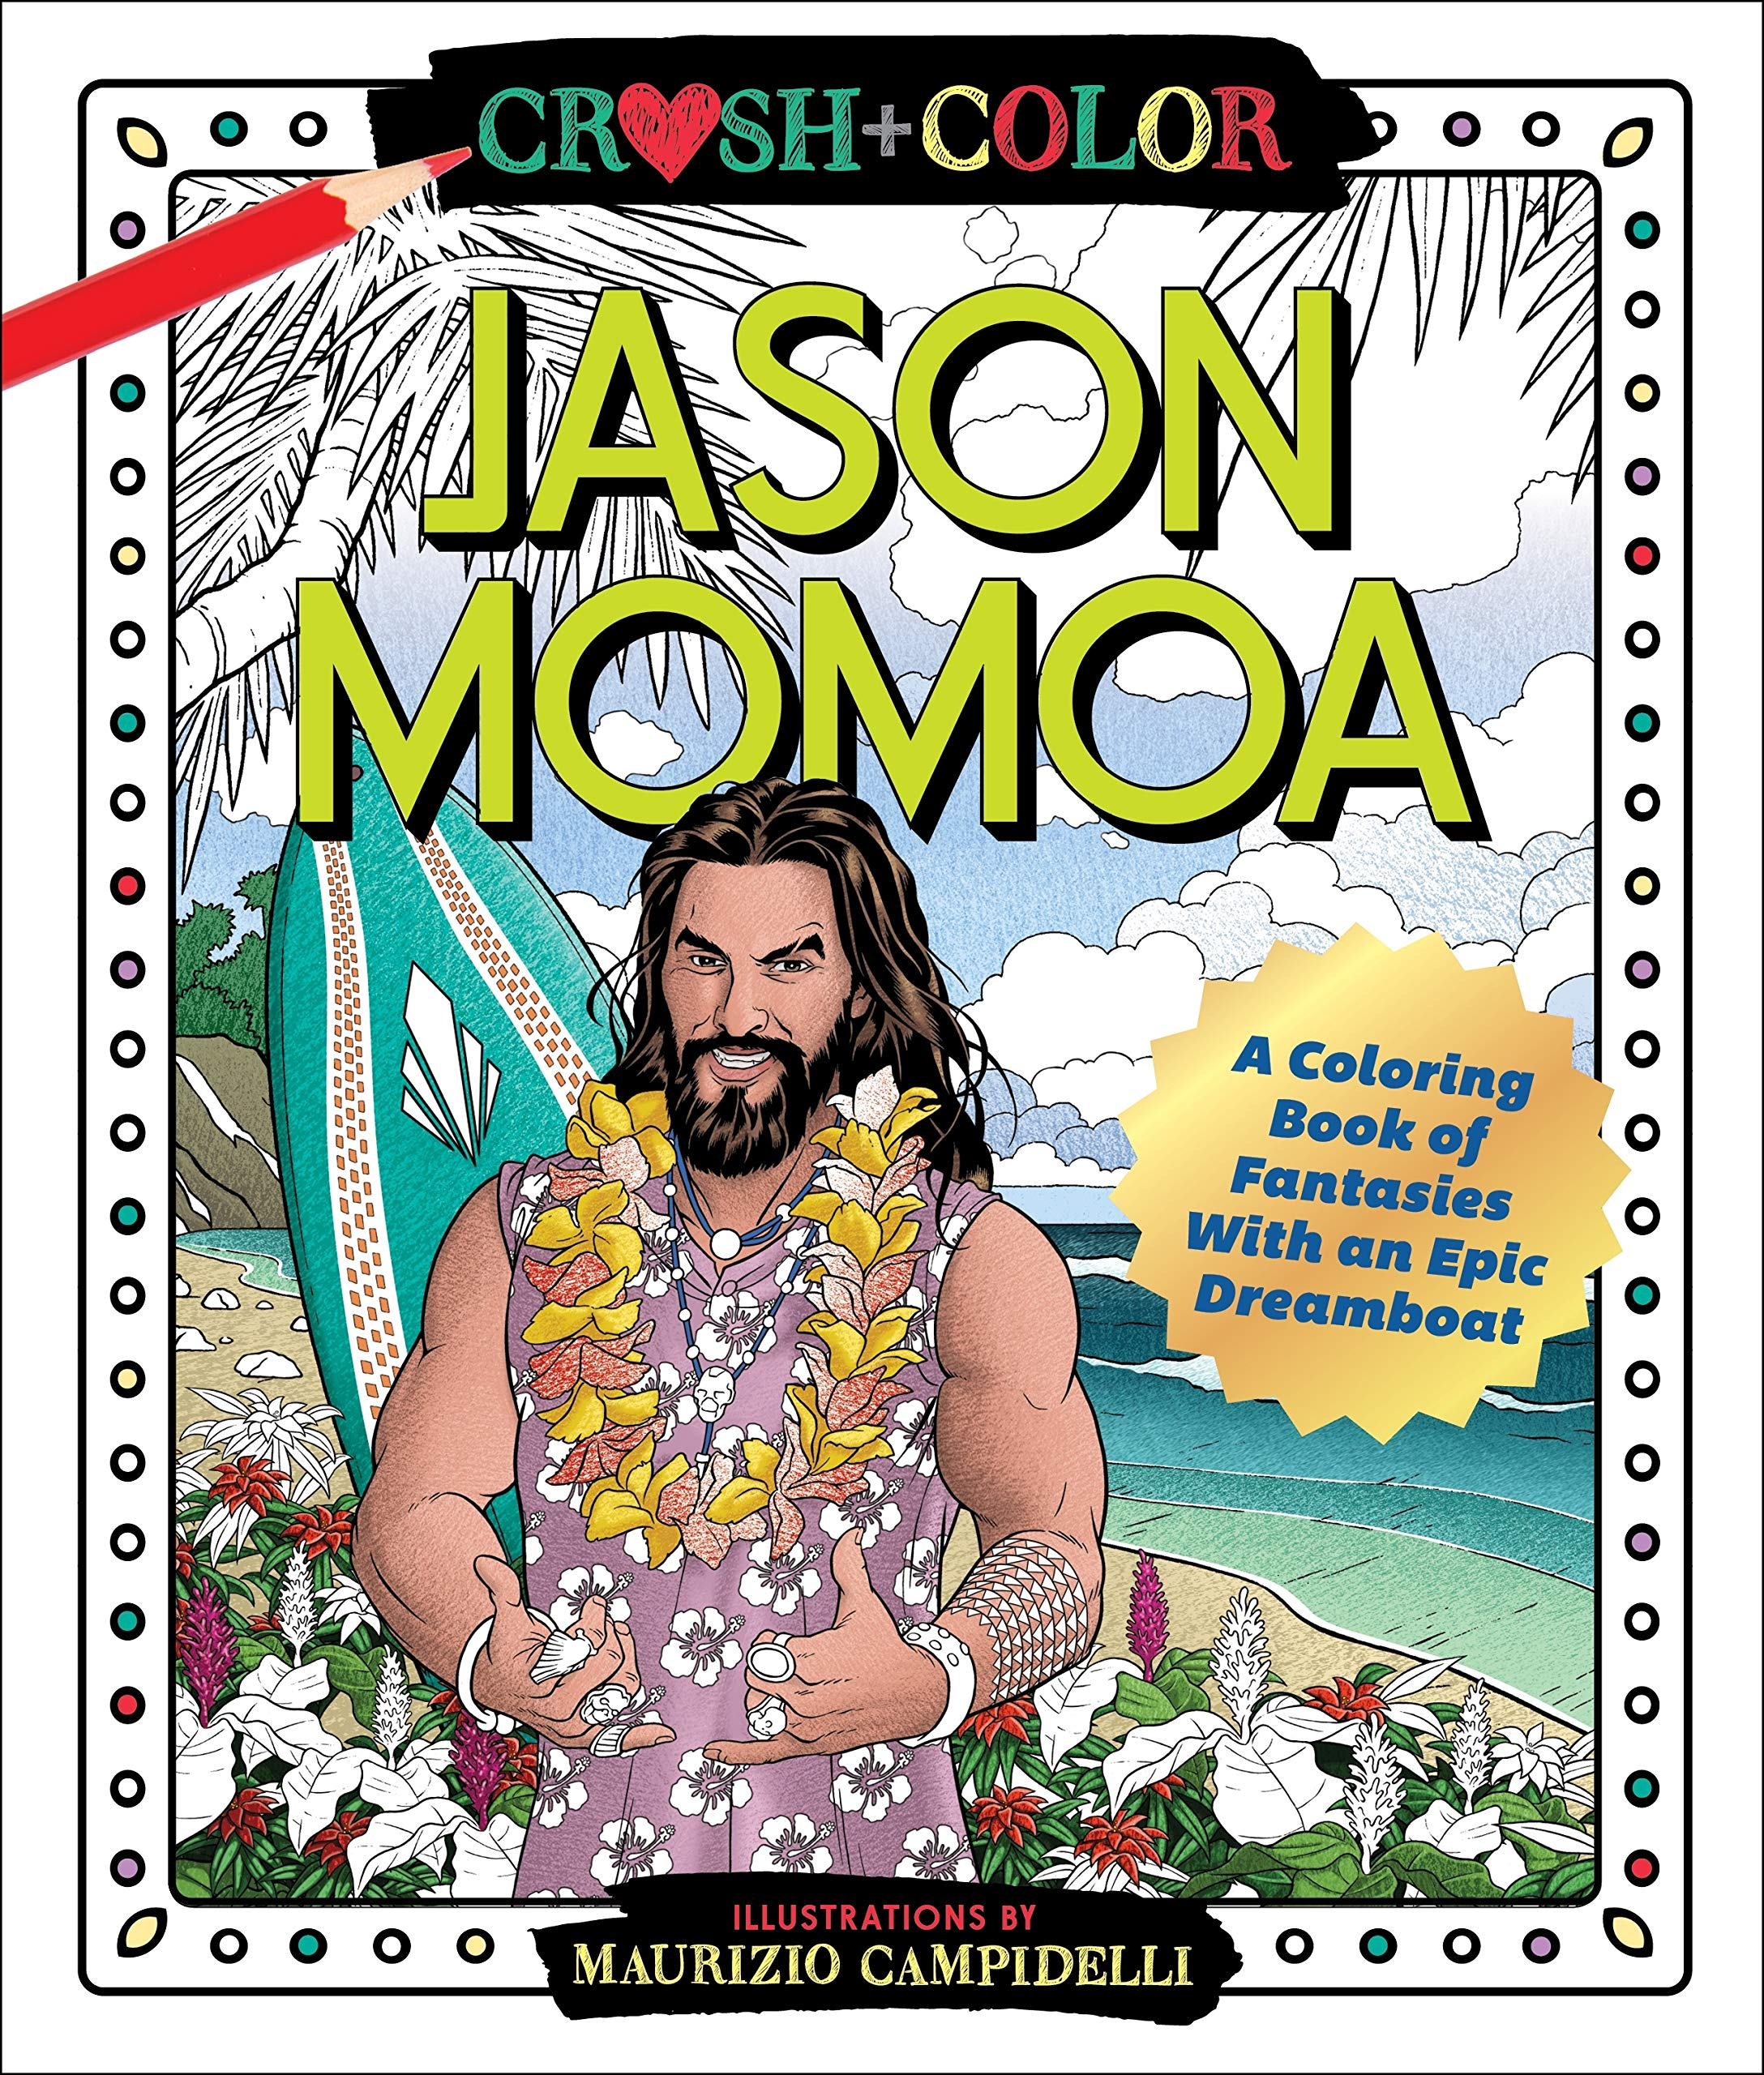 Amazon Com Crush And Color Jason Momoa A Coloring Book Of Fantasies With An Epic Dreamboat 9781250256683 Campidelli Maurizio Books